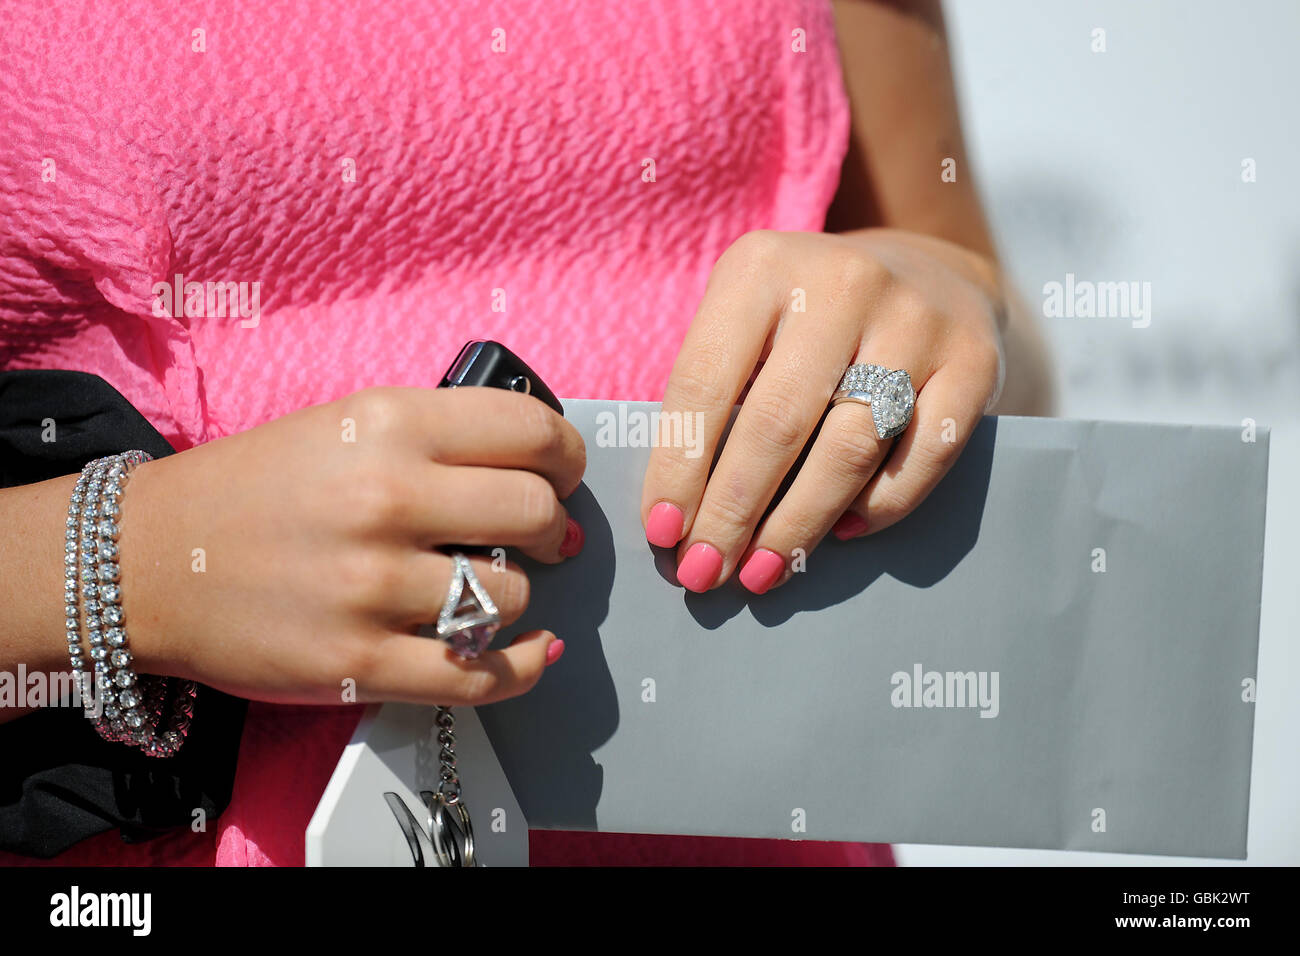 Coleen Rooney Stock Photos & Coleen Rooney Stock Images - Page 4 - Alamy